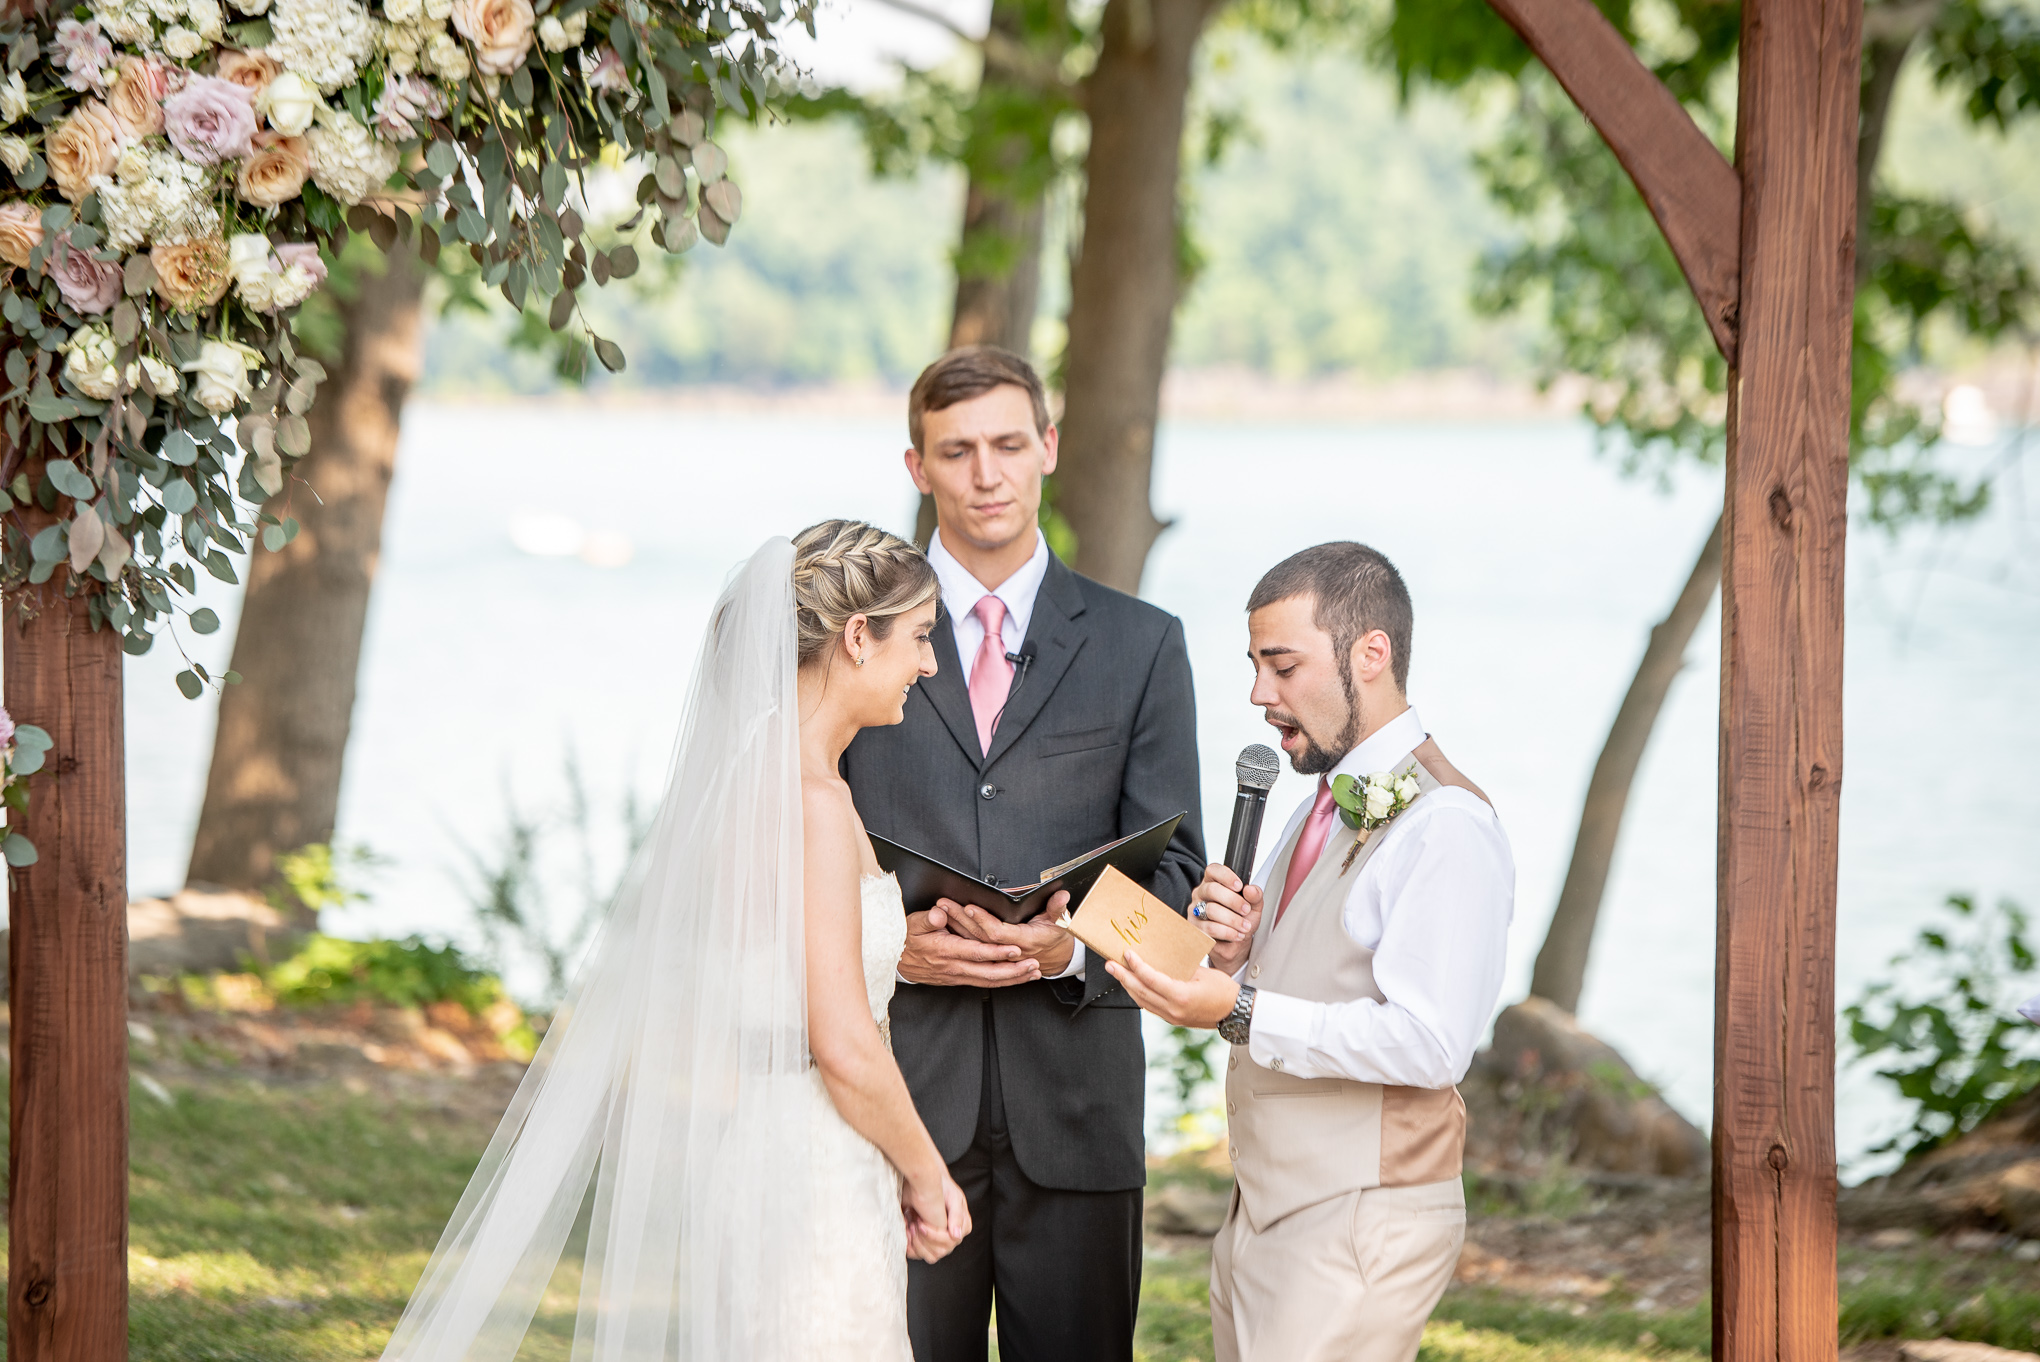 groom saying his vows at his Nashville wedding